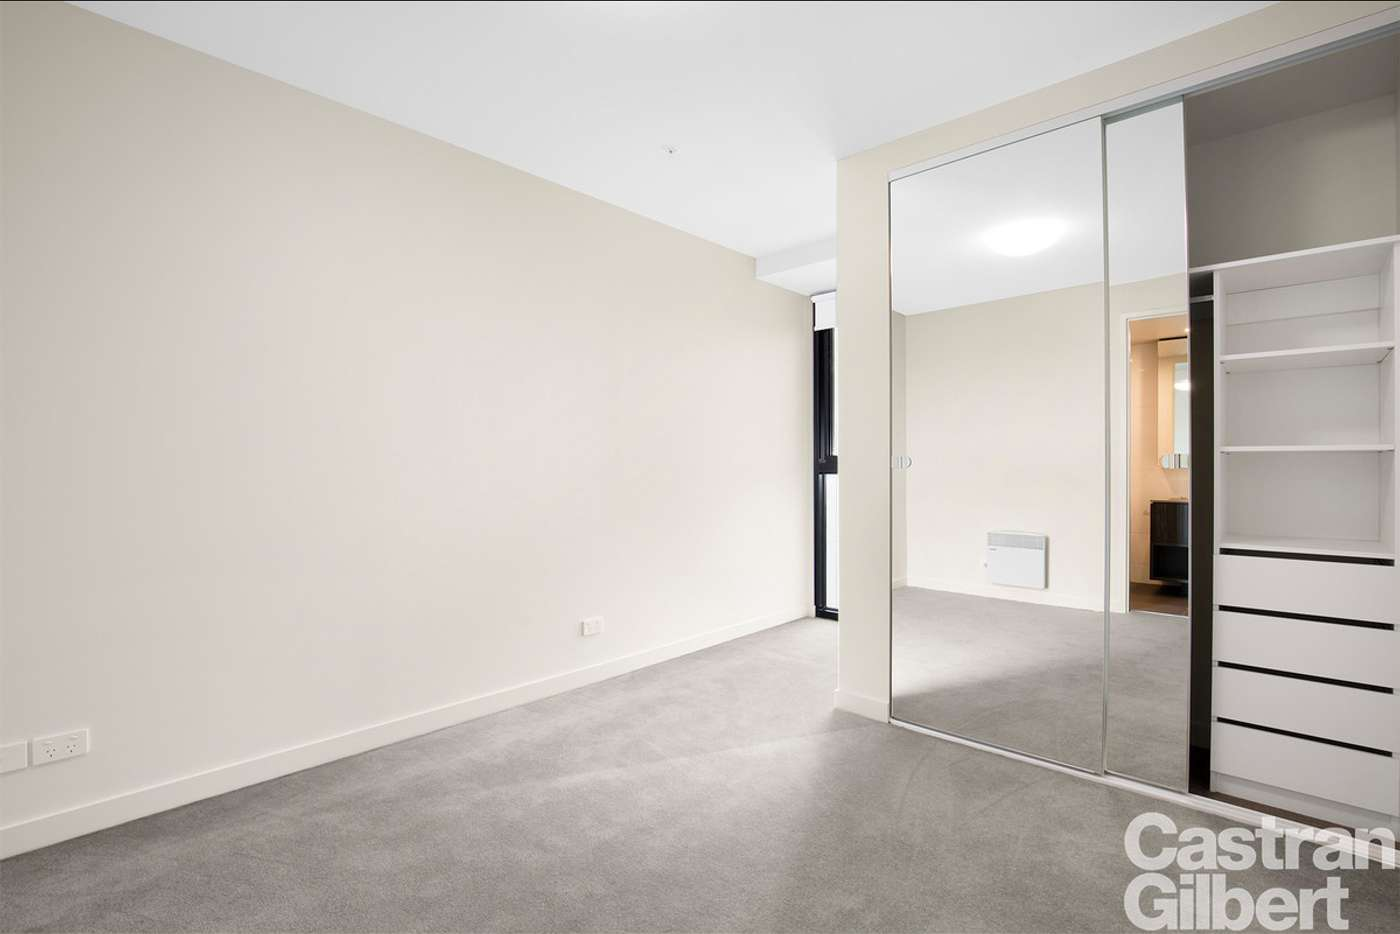 Sixth view of Homely apartment listing, 415/1228 Nepean Highway, Cheltenham VIC 3192